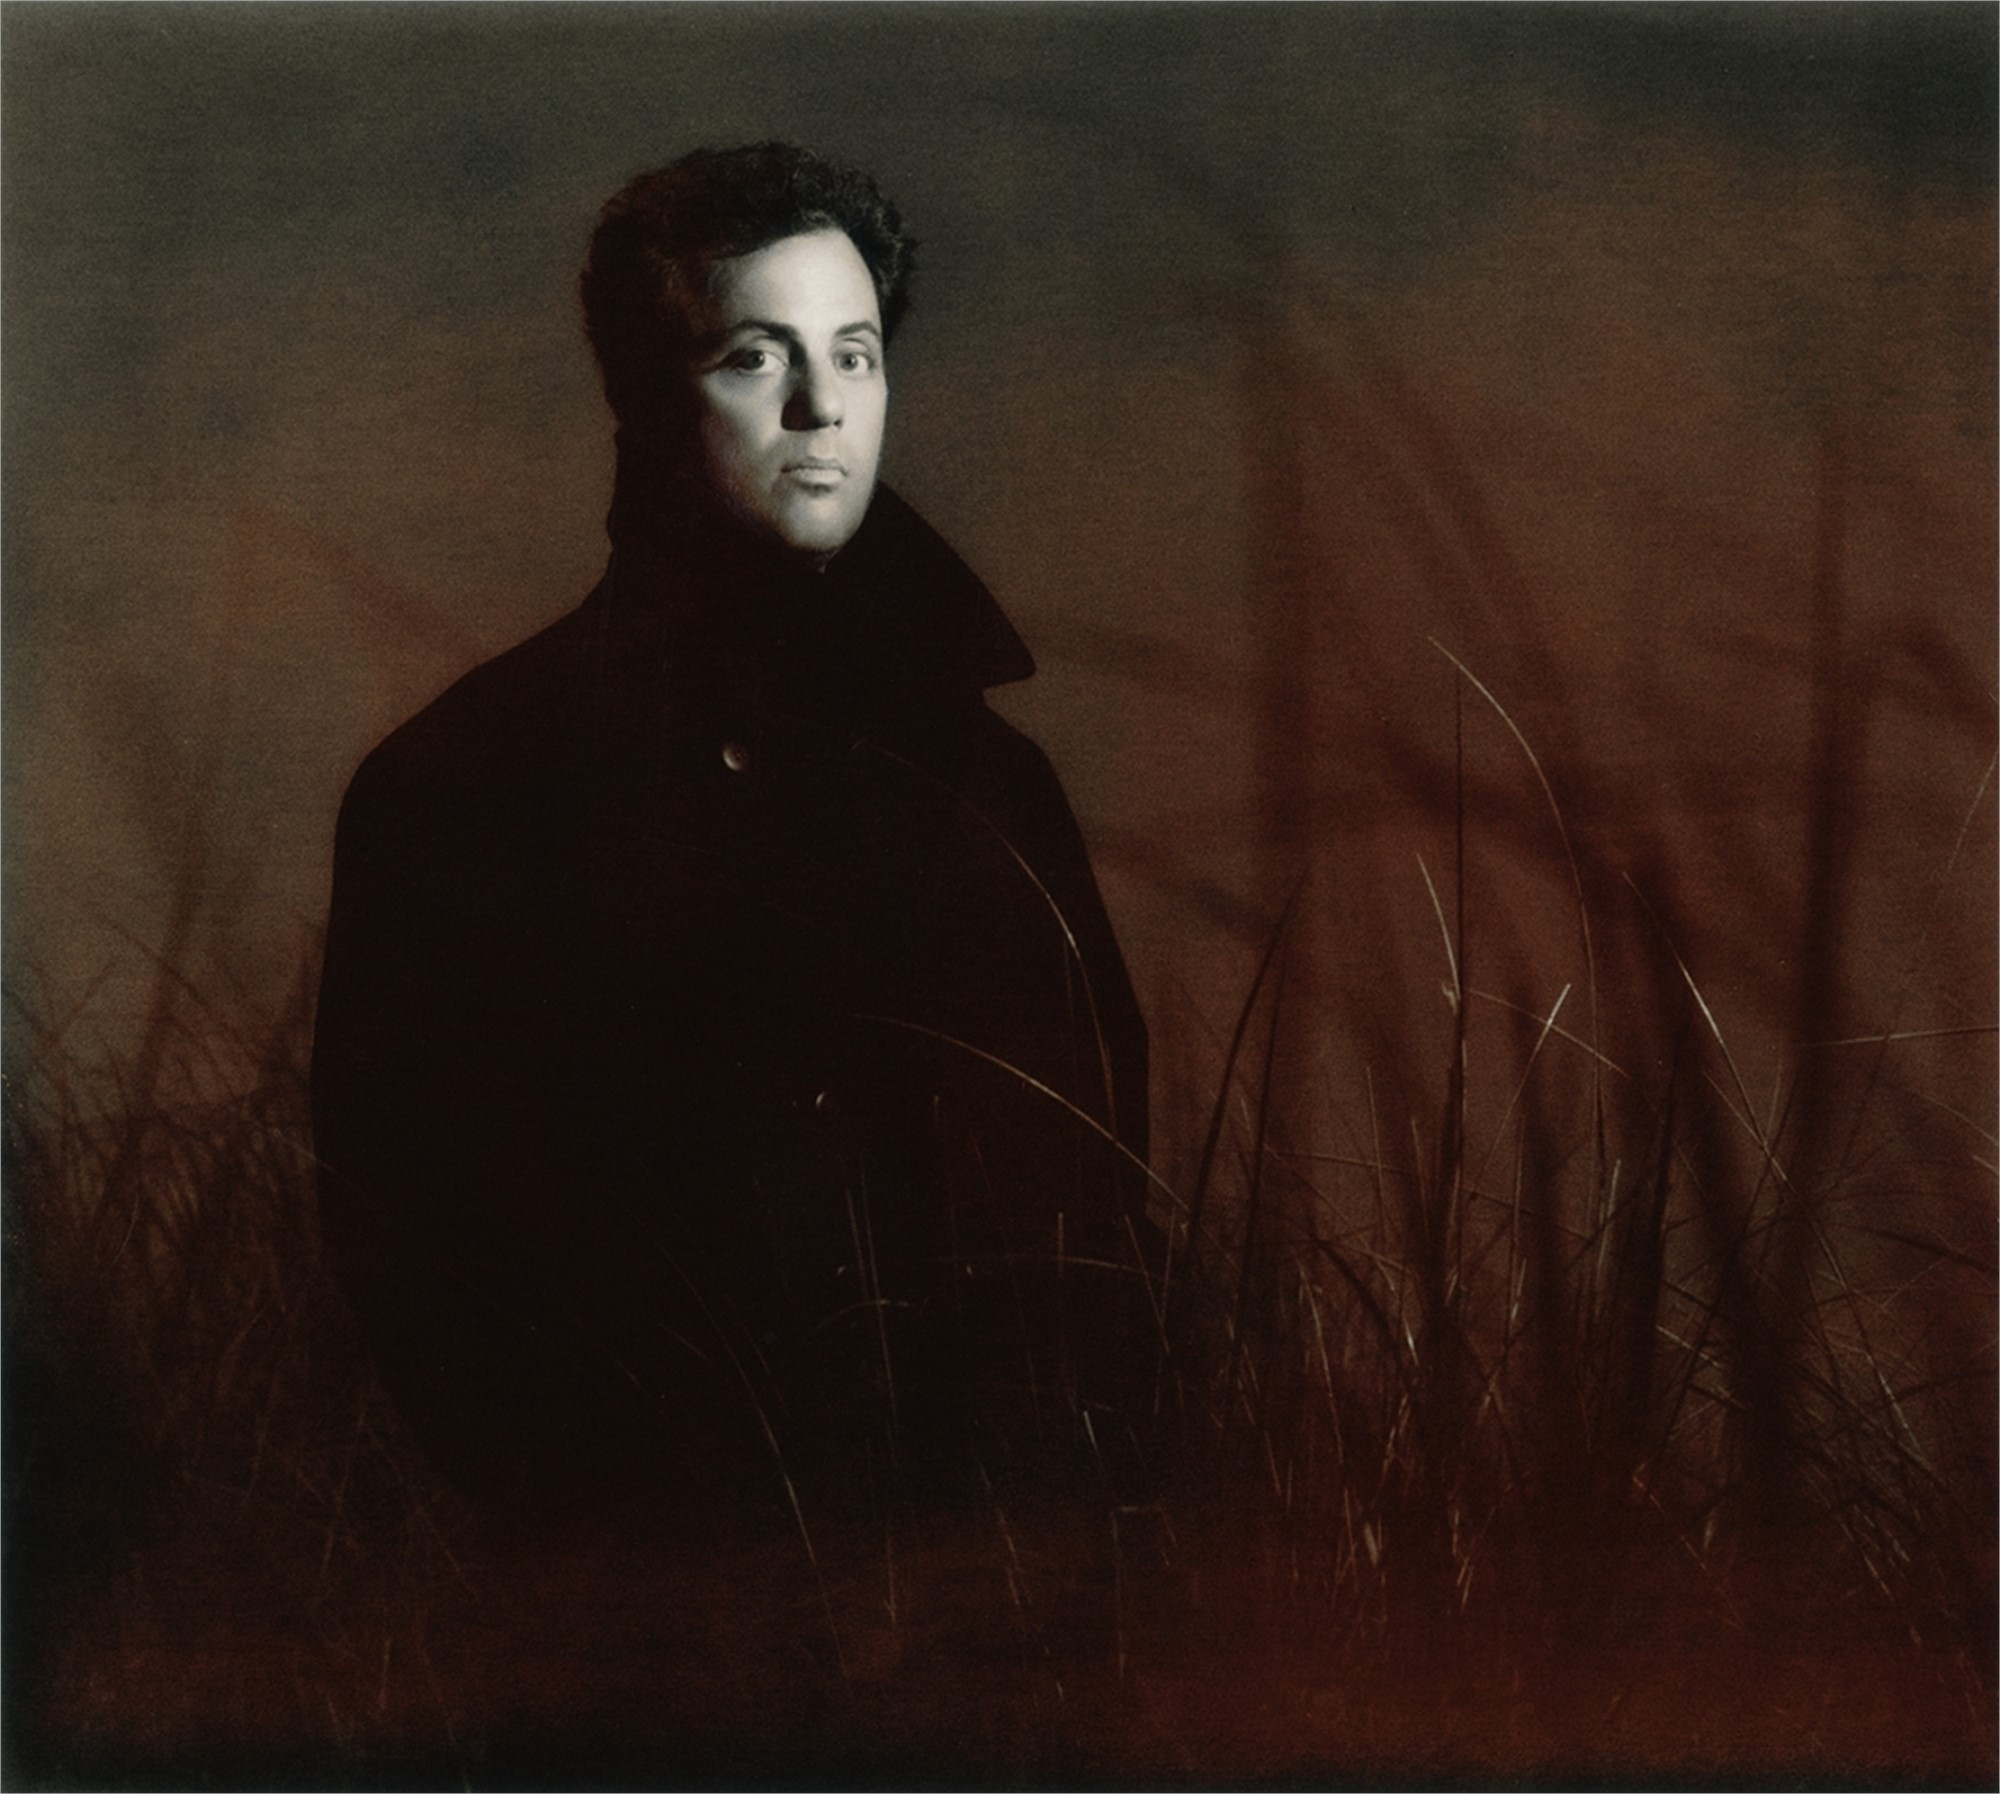 89134 Billy Joel in Coat BW by Timothy White